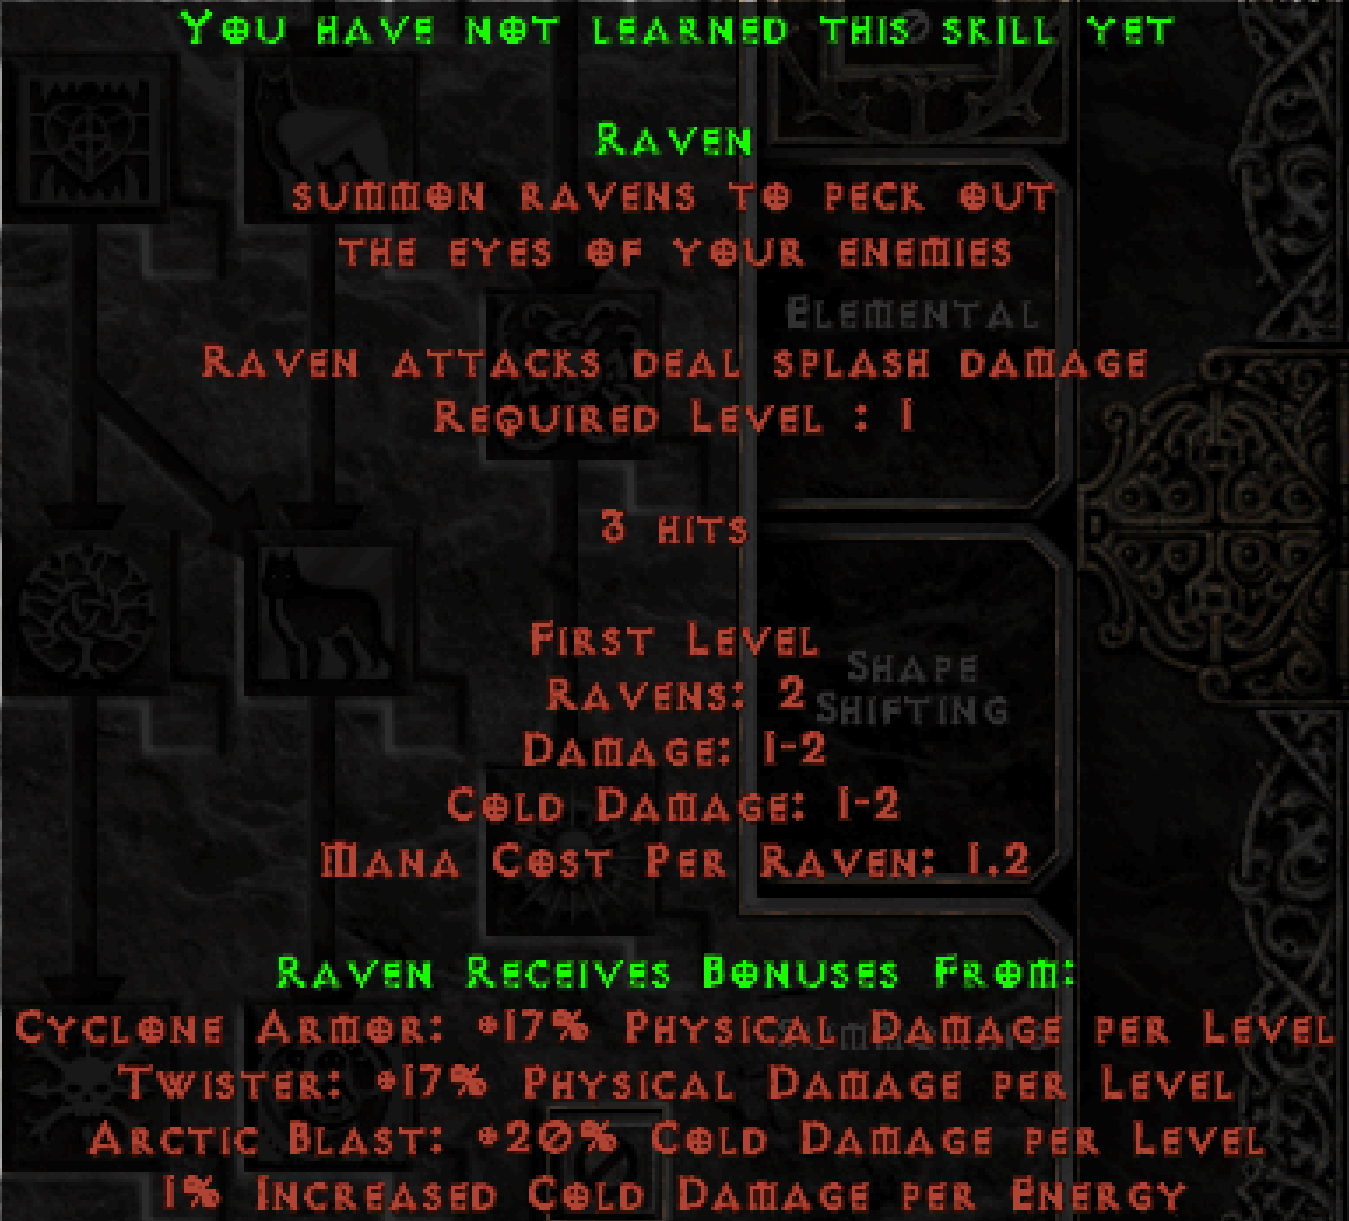 path-of-diablo-raven-tooltip-2